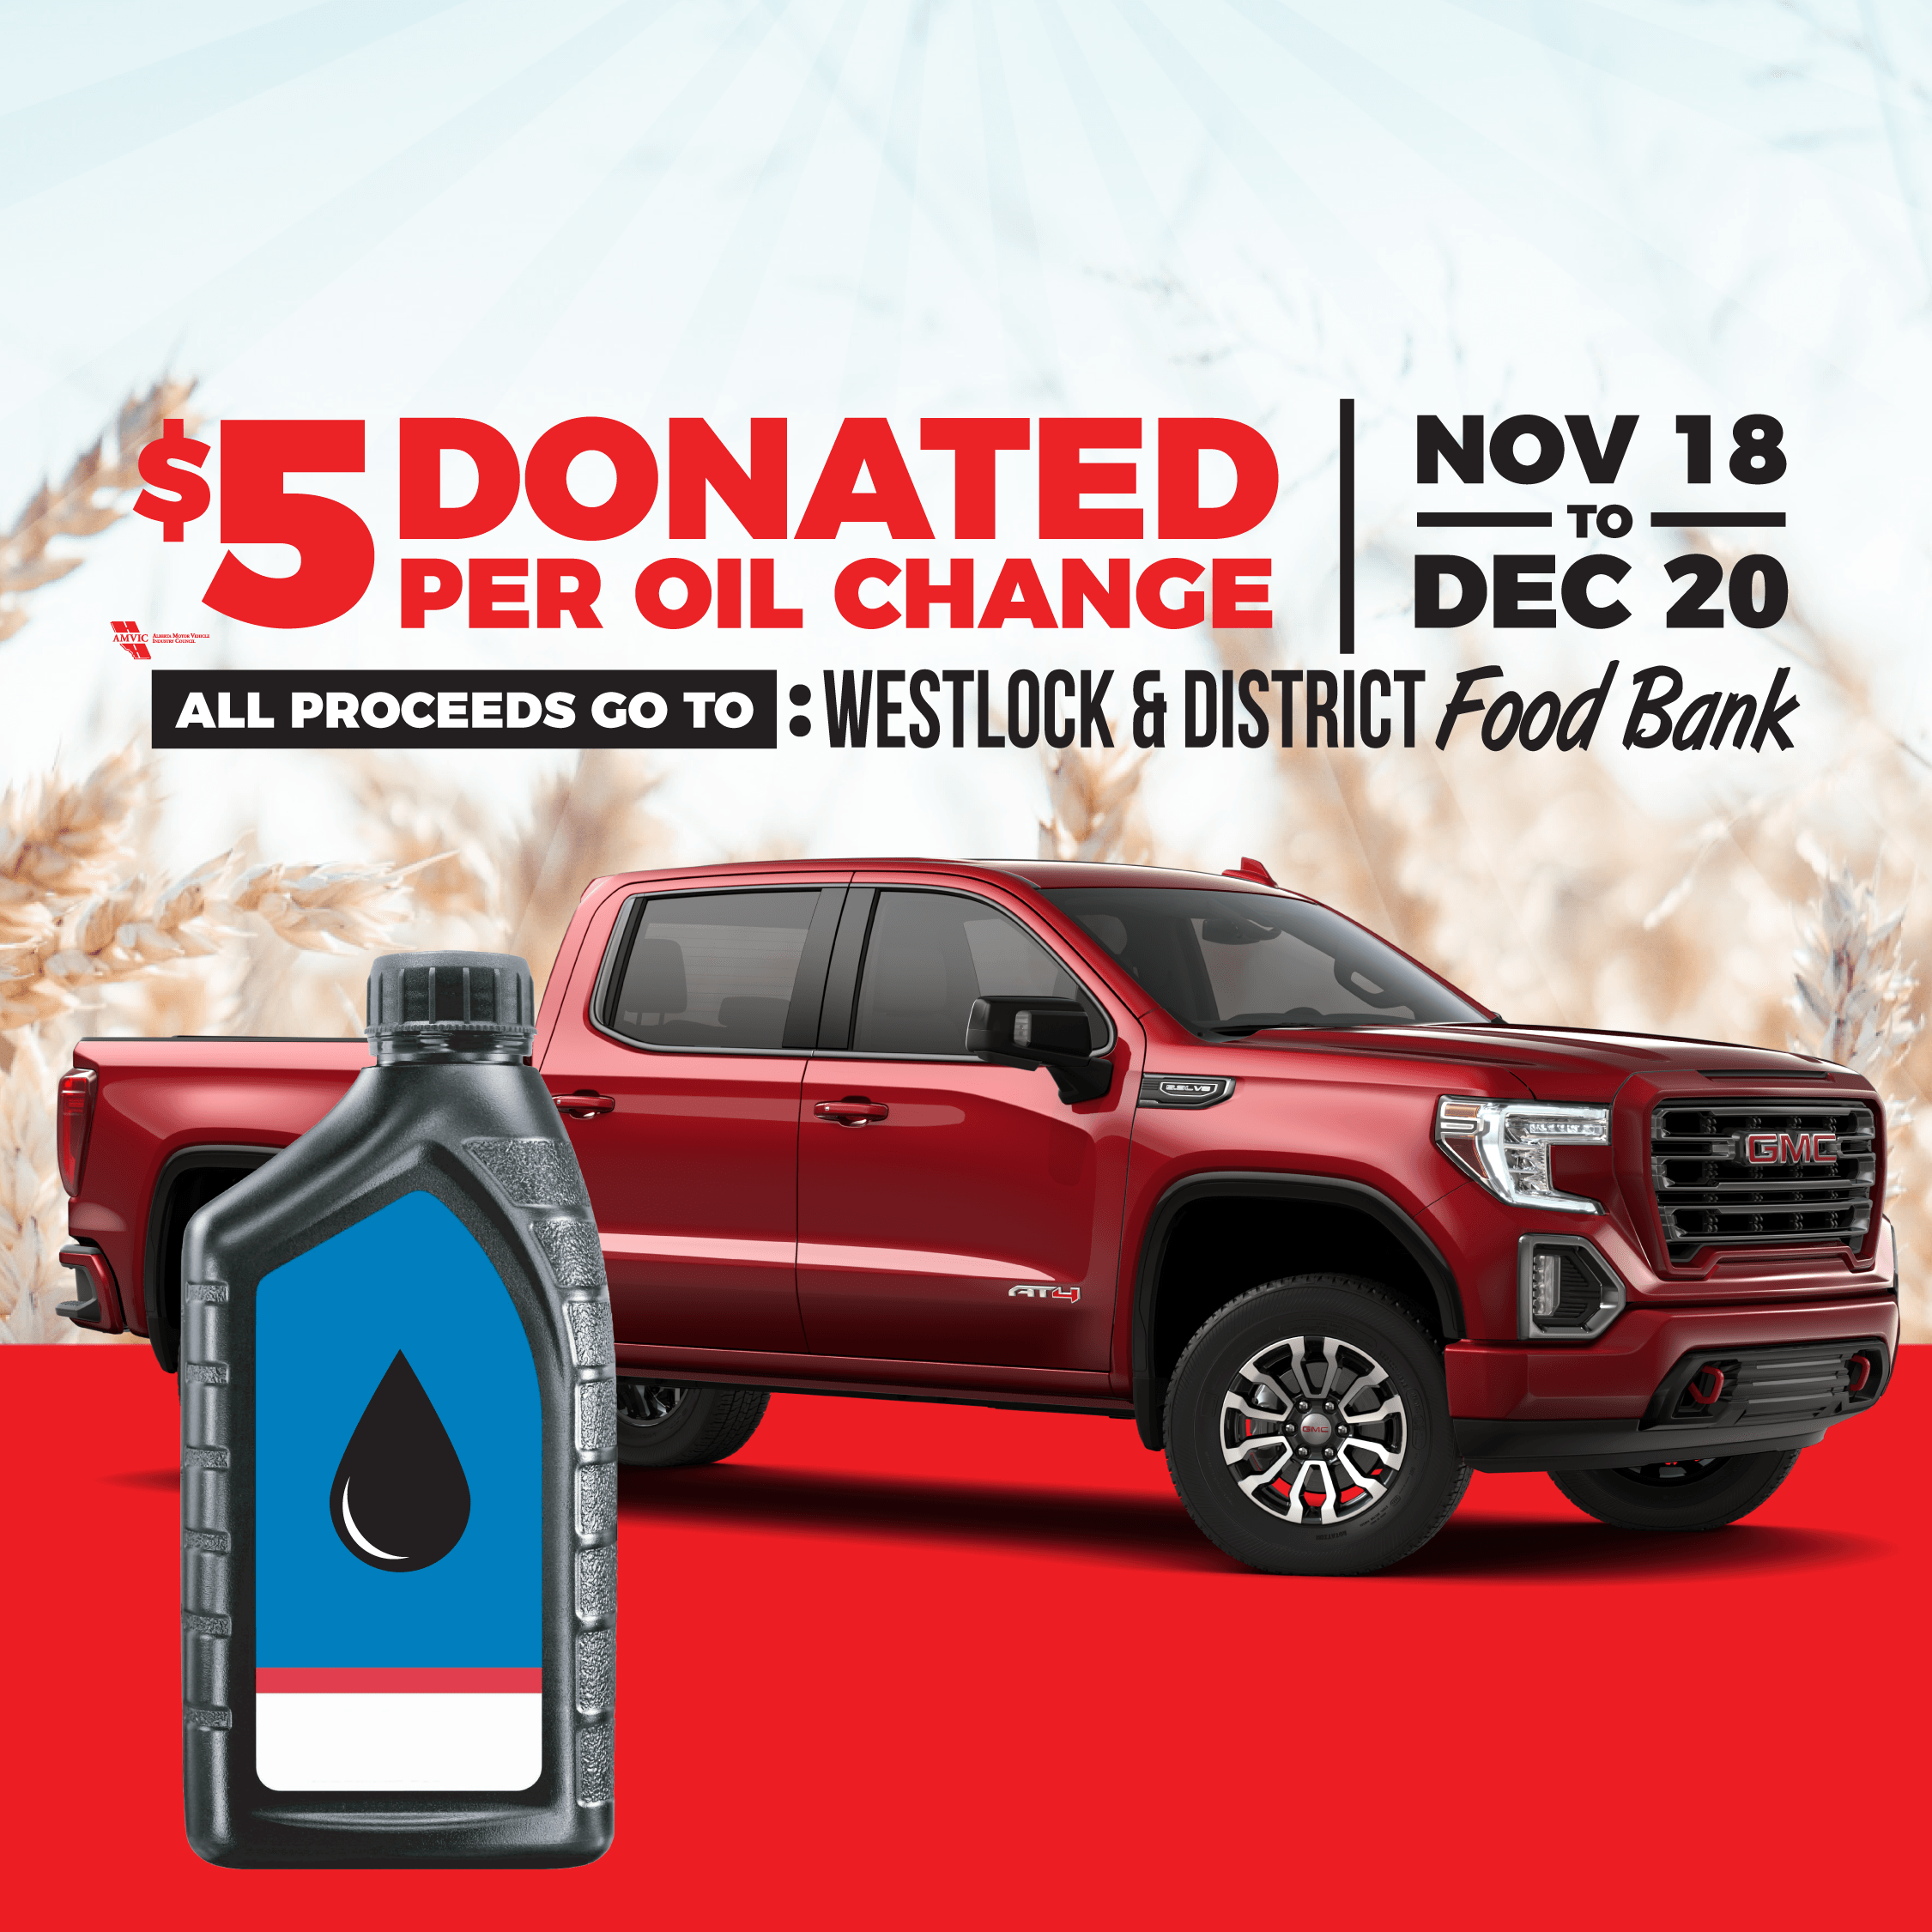 When you get your Oil Changed we will donate $5 to our local foodbank